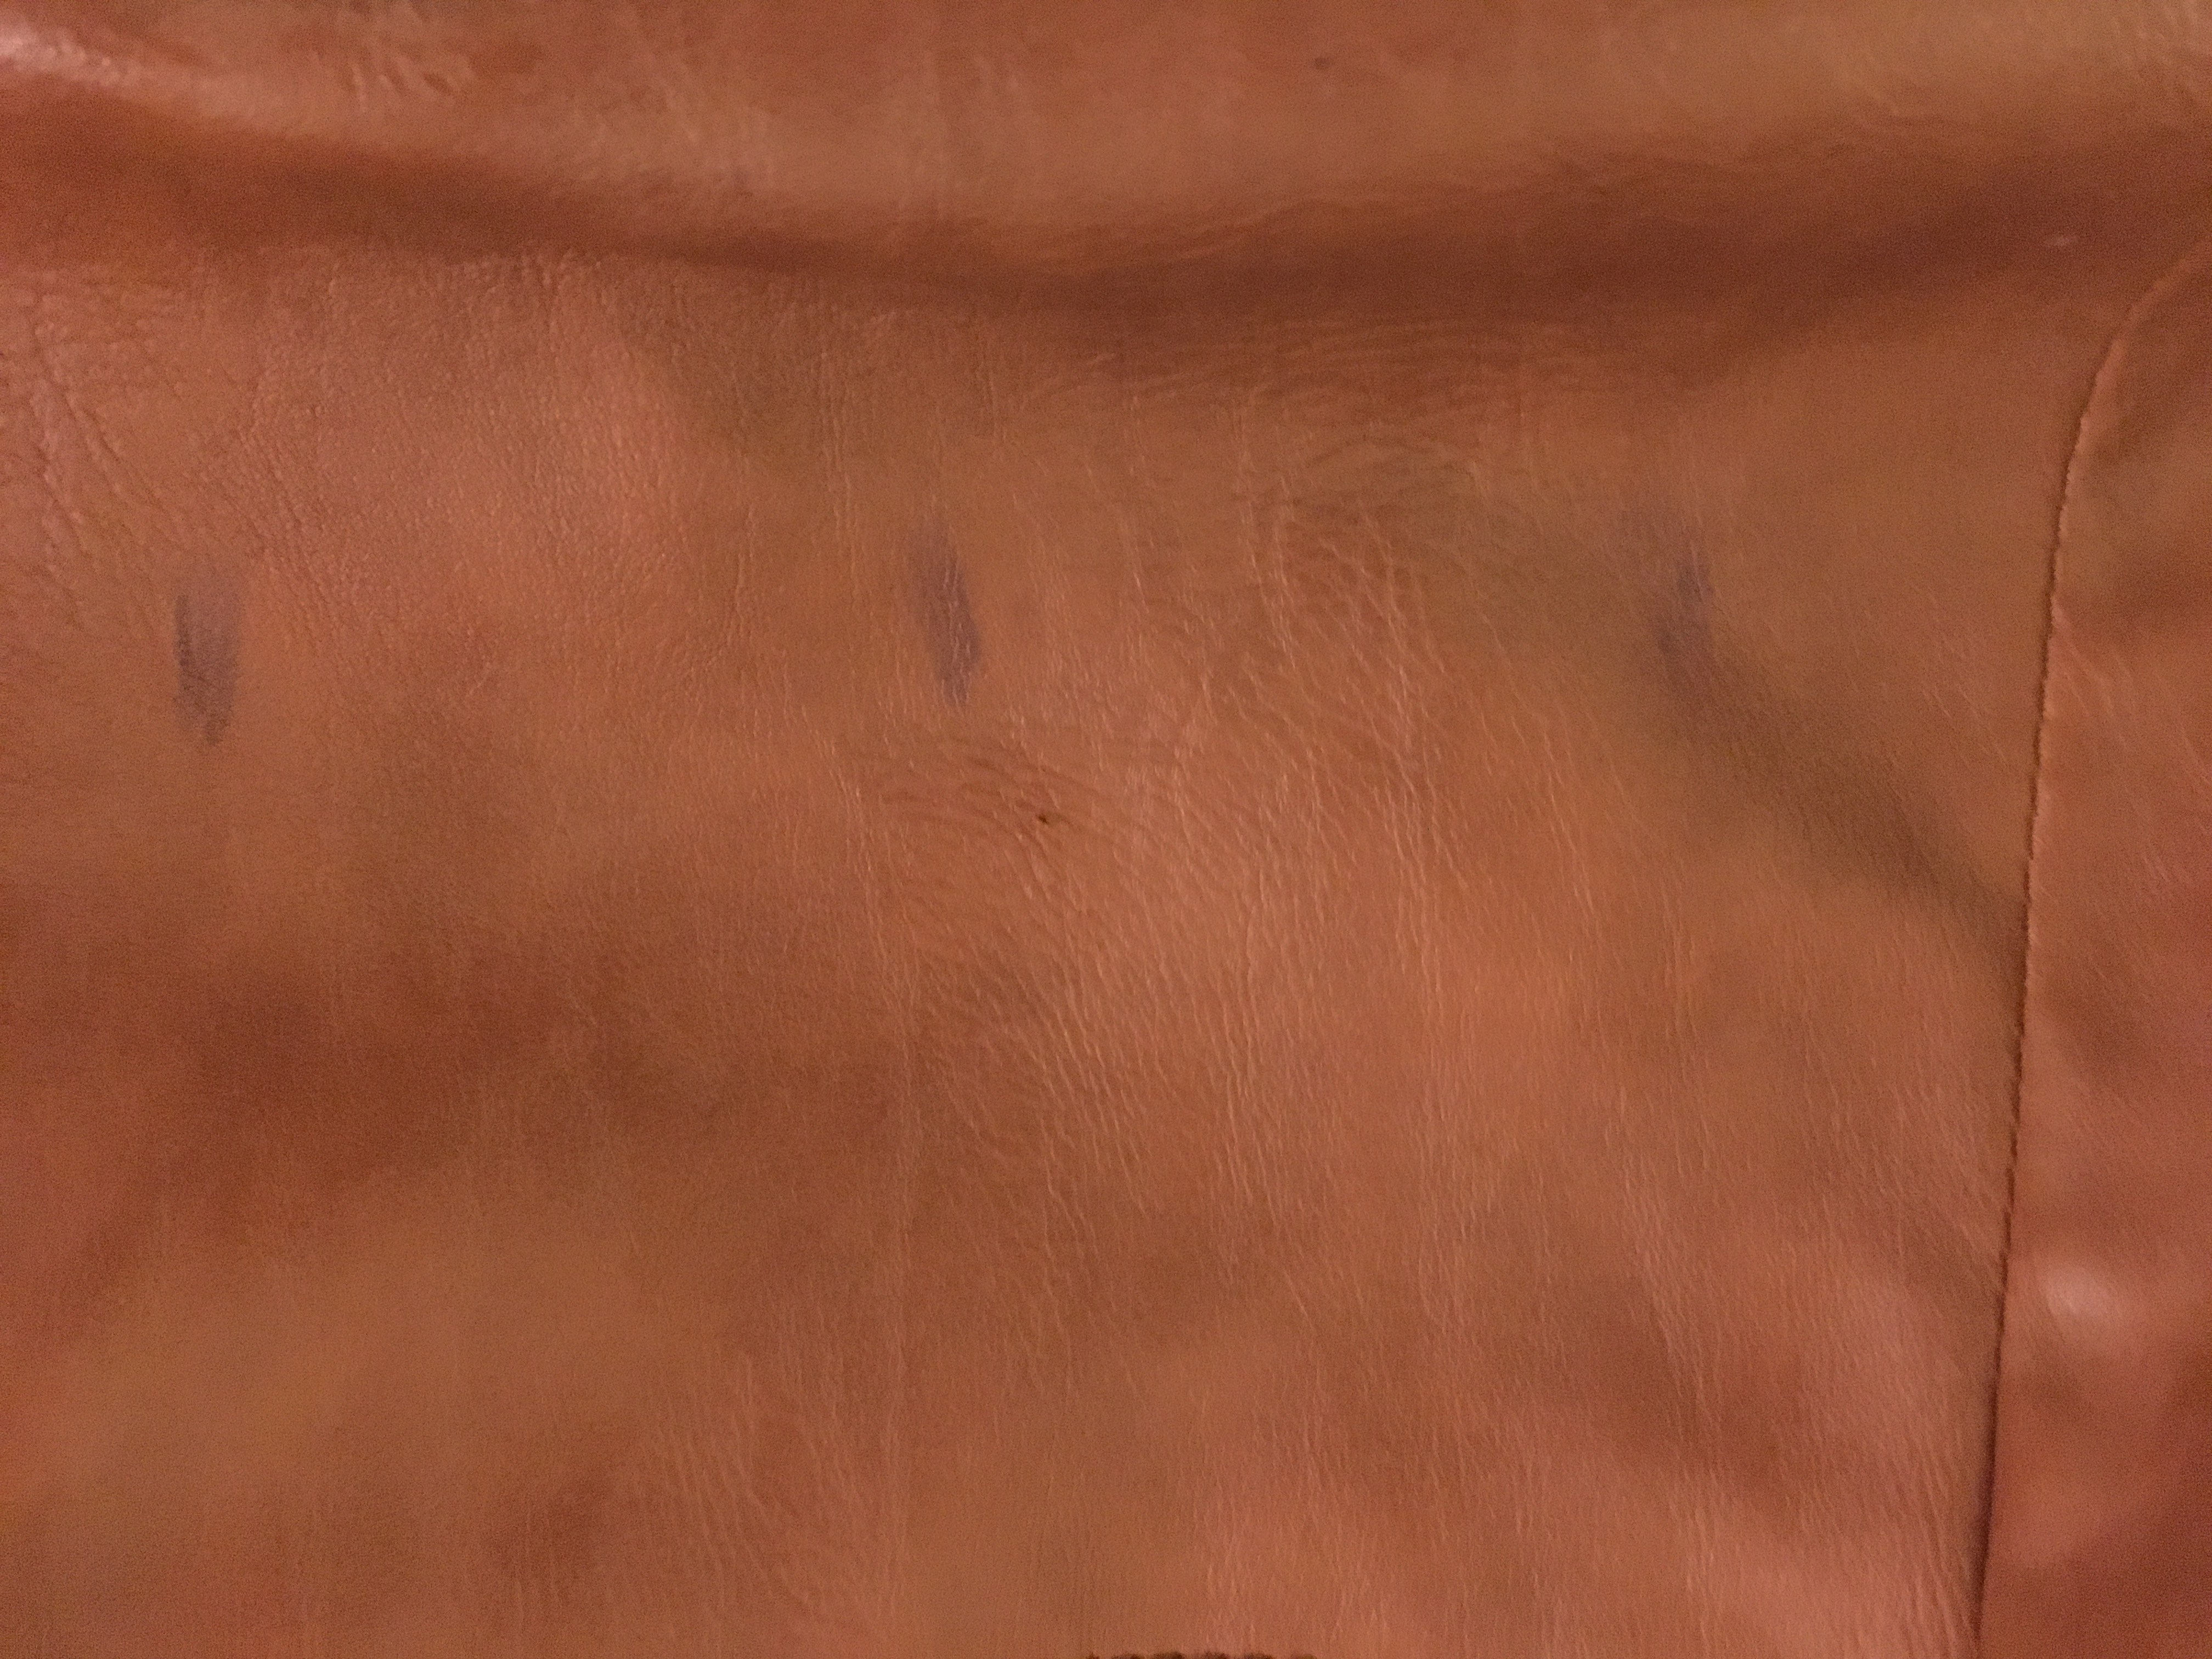 how to get rid of ink marks on leather sofa cover your with a throw an stain out purse